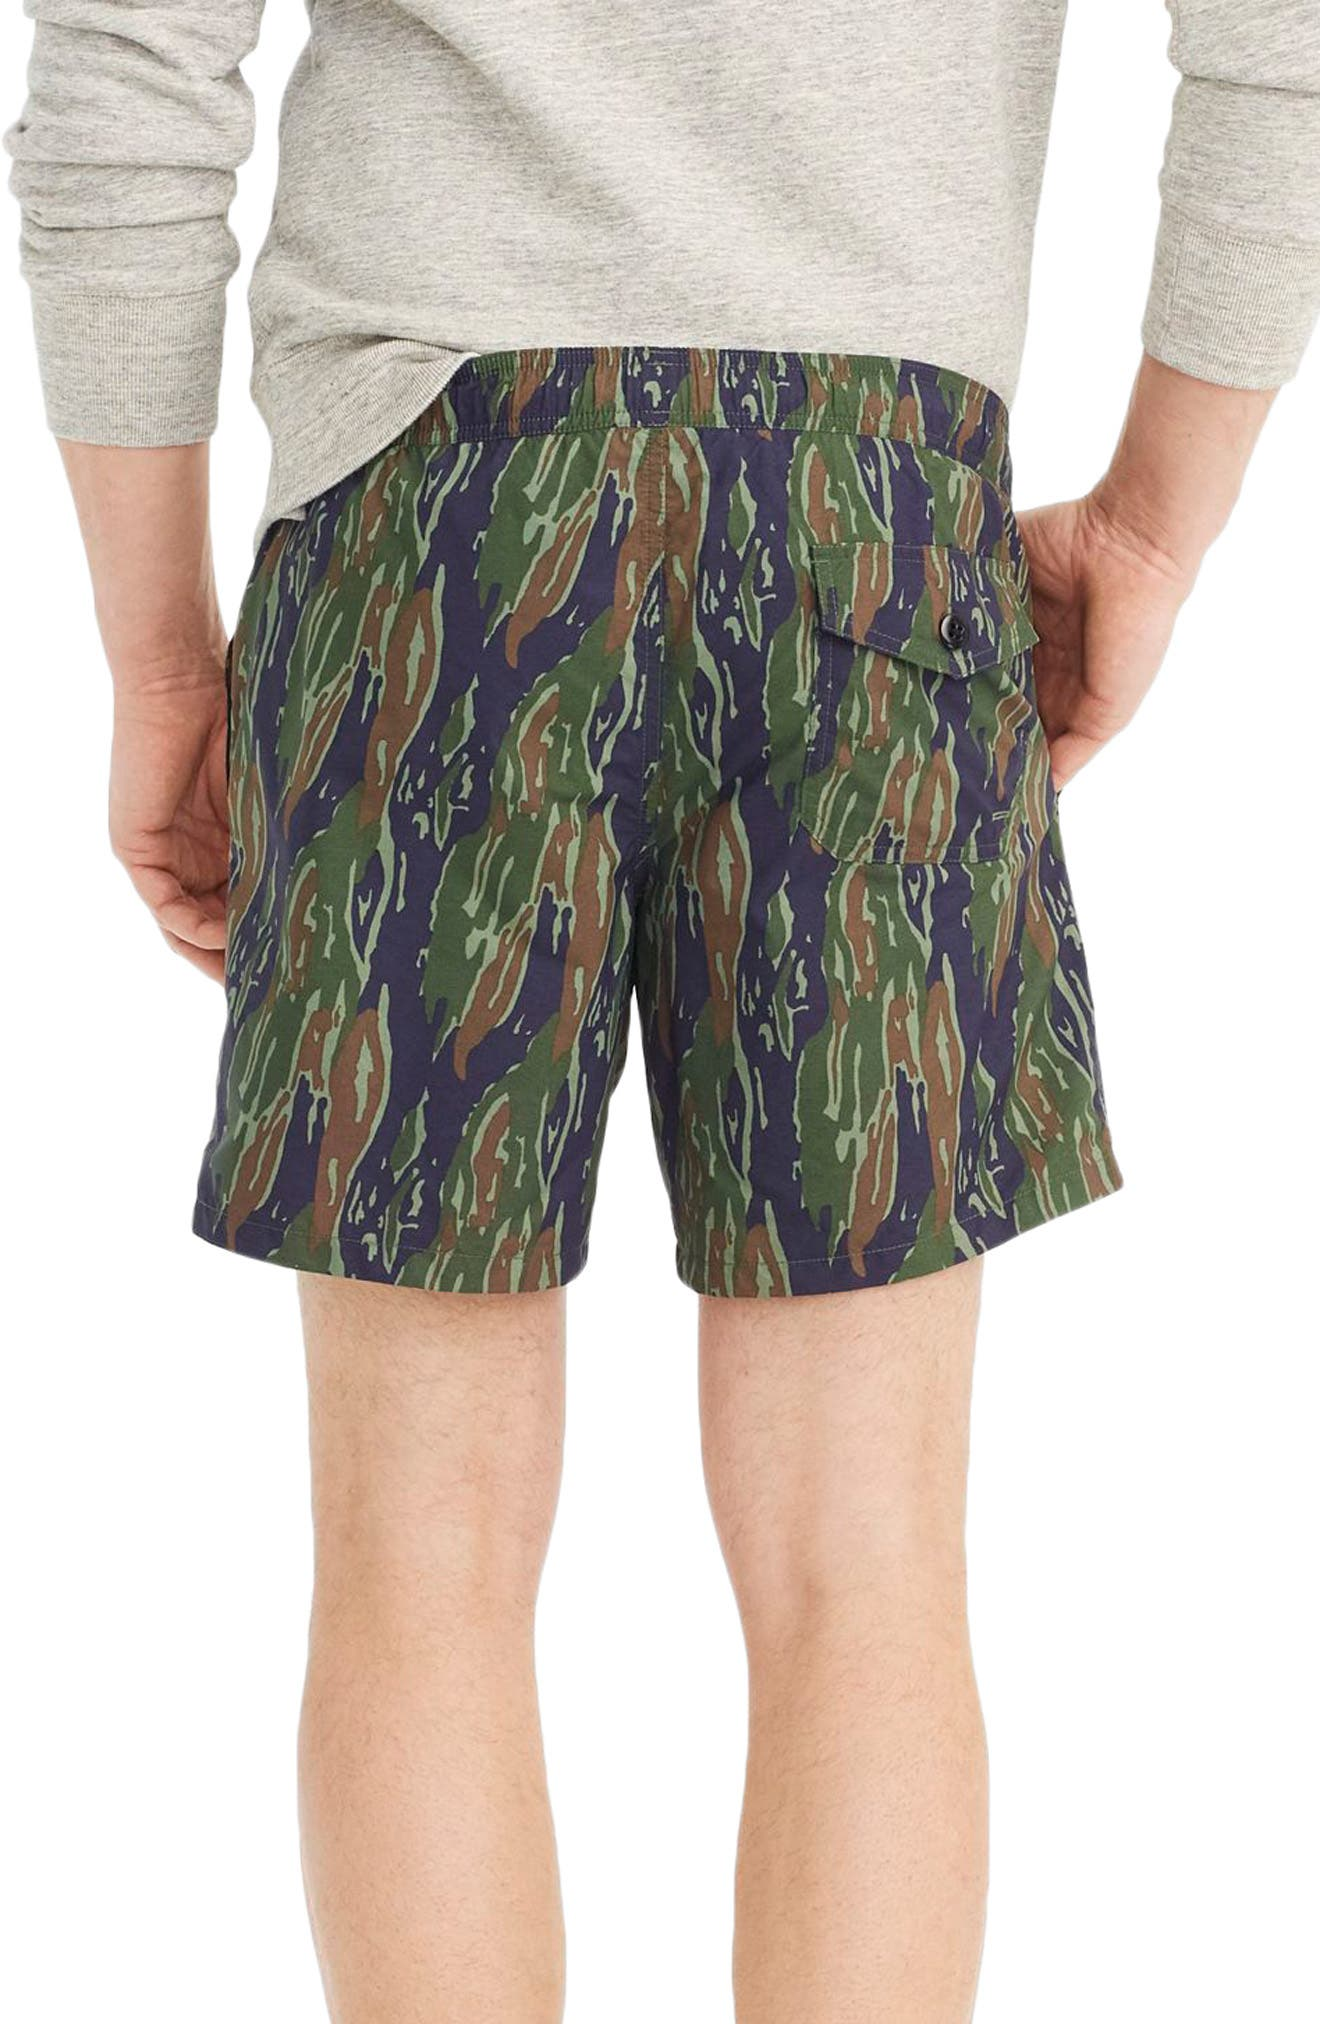 J.Crew Camo Swim Trunks,                             Alternate thumbnail 2, color,                             Tiger Stripe Camo